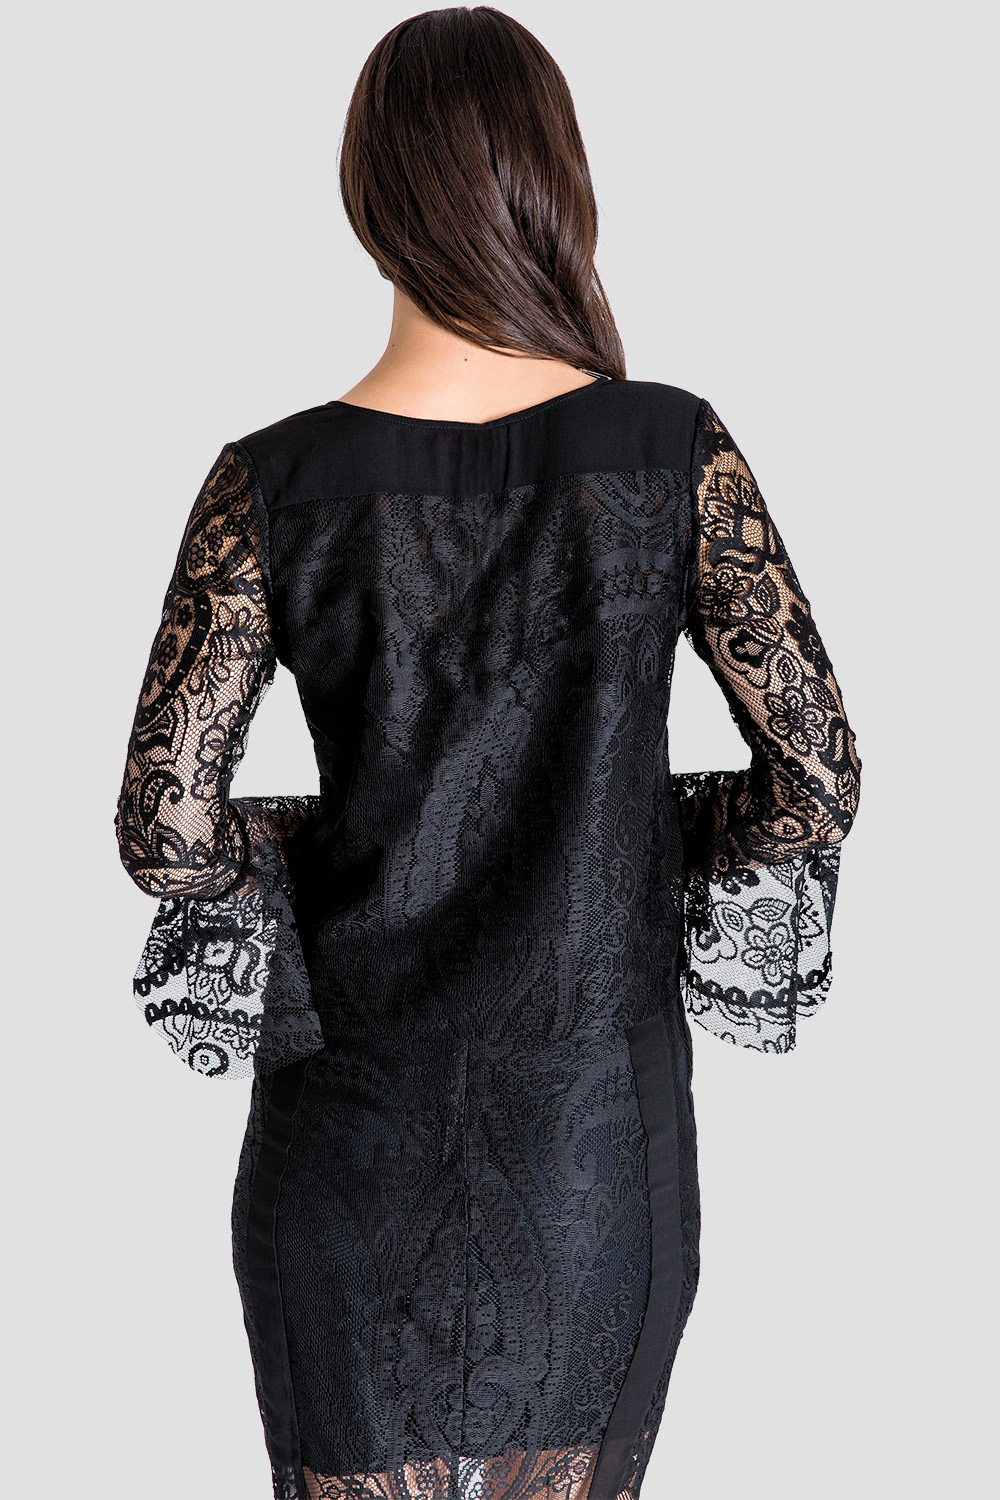 Black Lace Flare Sleeve Women's Blouse